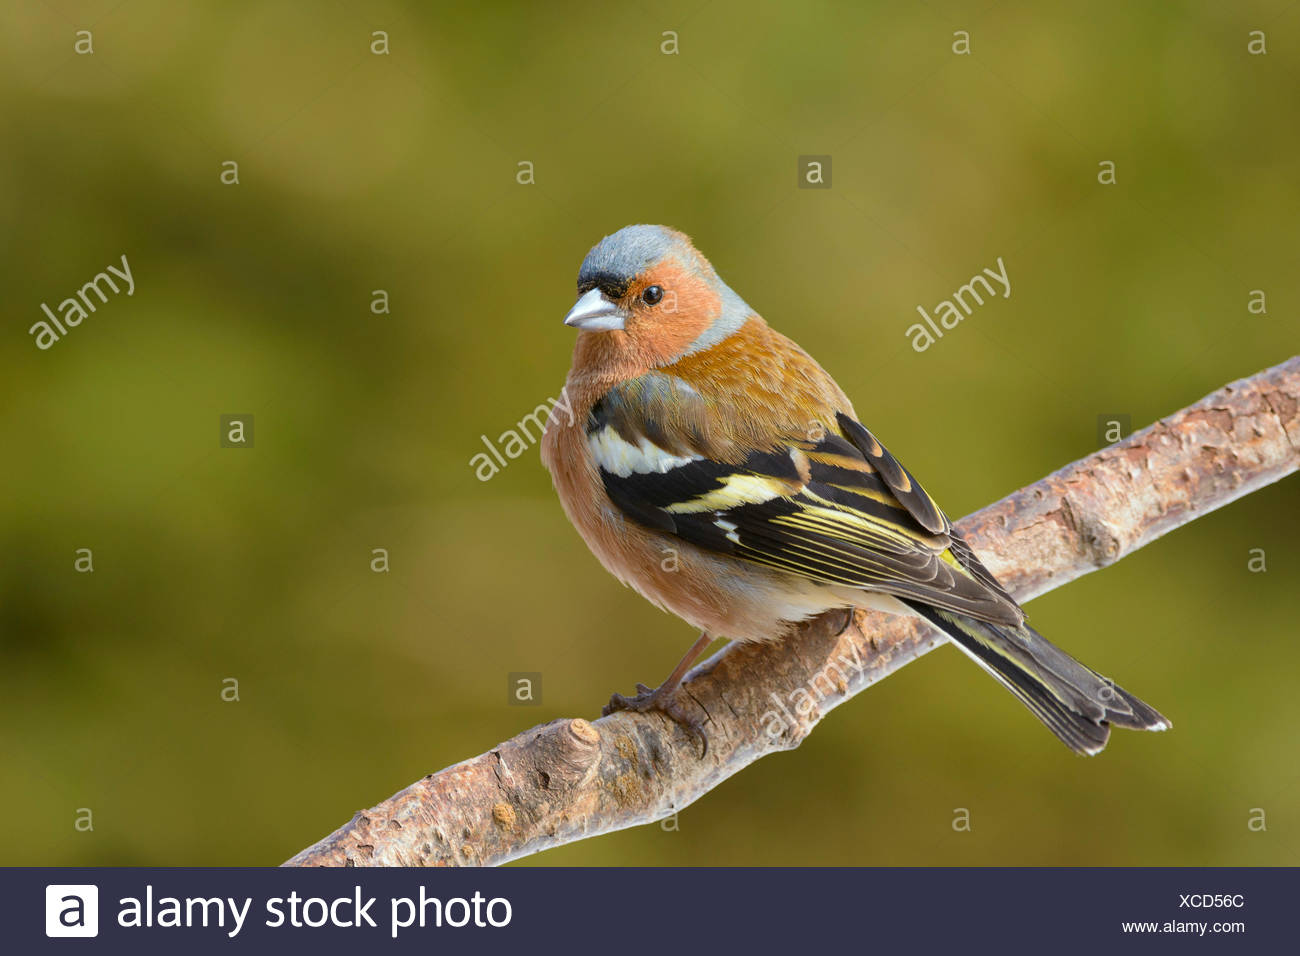 Chaffinch (Fringilla coelebs) on tree branch, Thuringian Forest, Thuringia, Germany - Stock Image